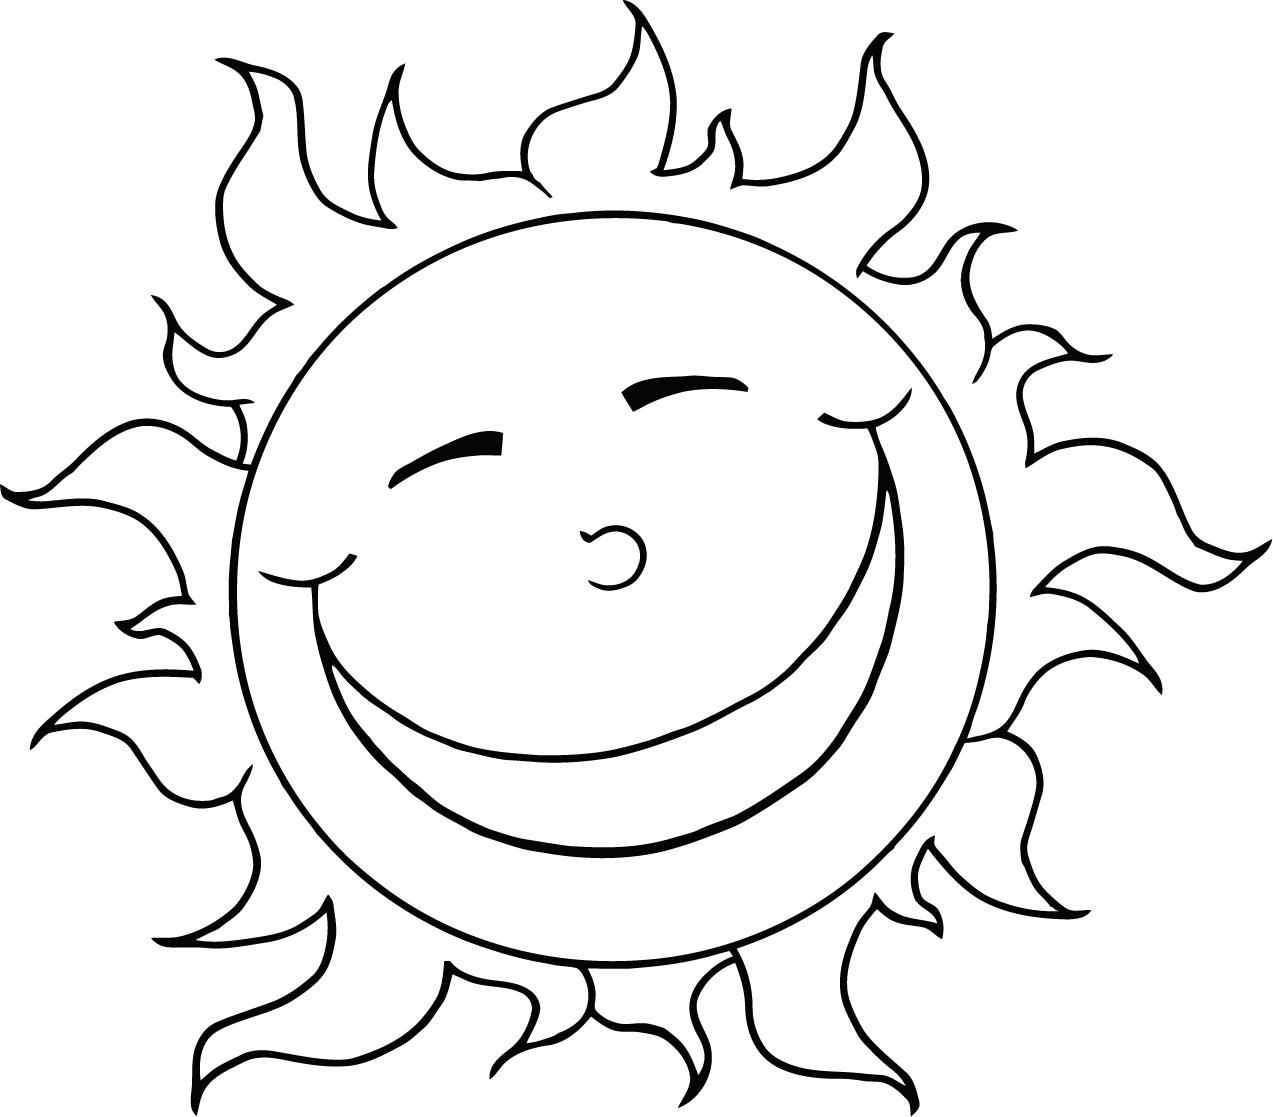 Sun coloring pages to download and print for free | ШАБЛОНИ ...